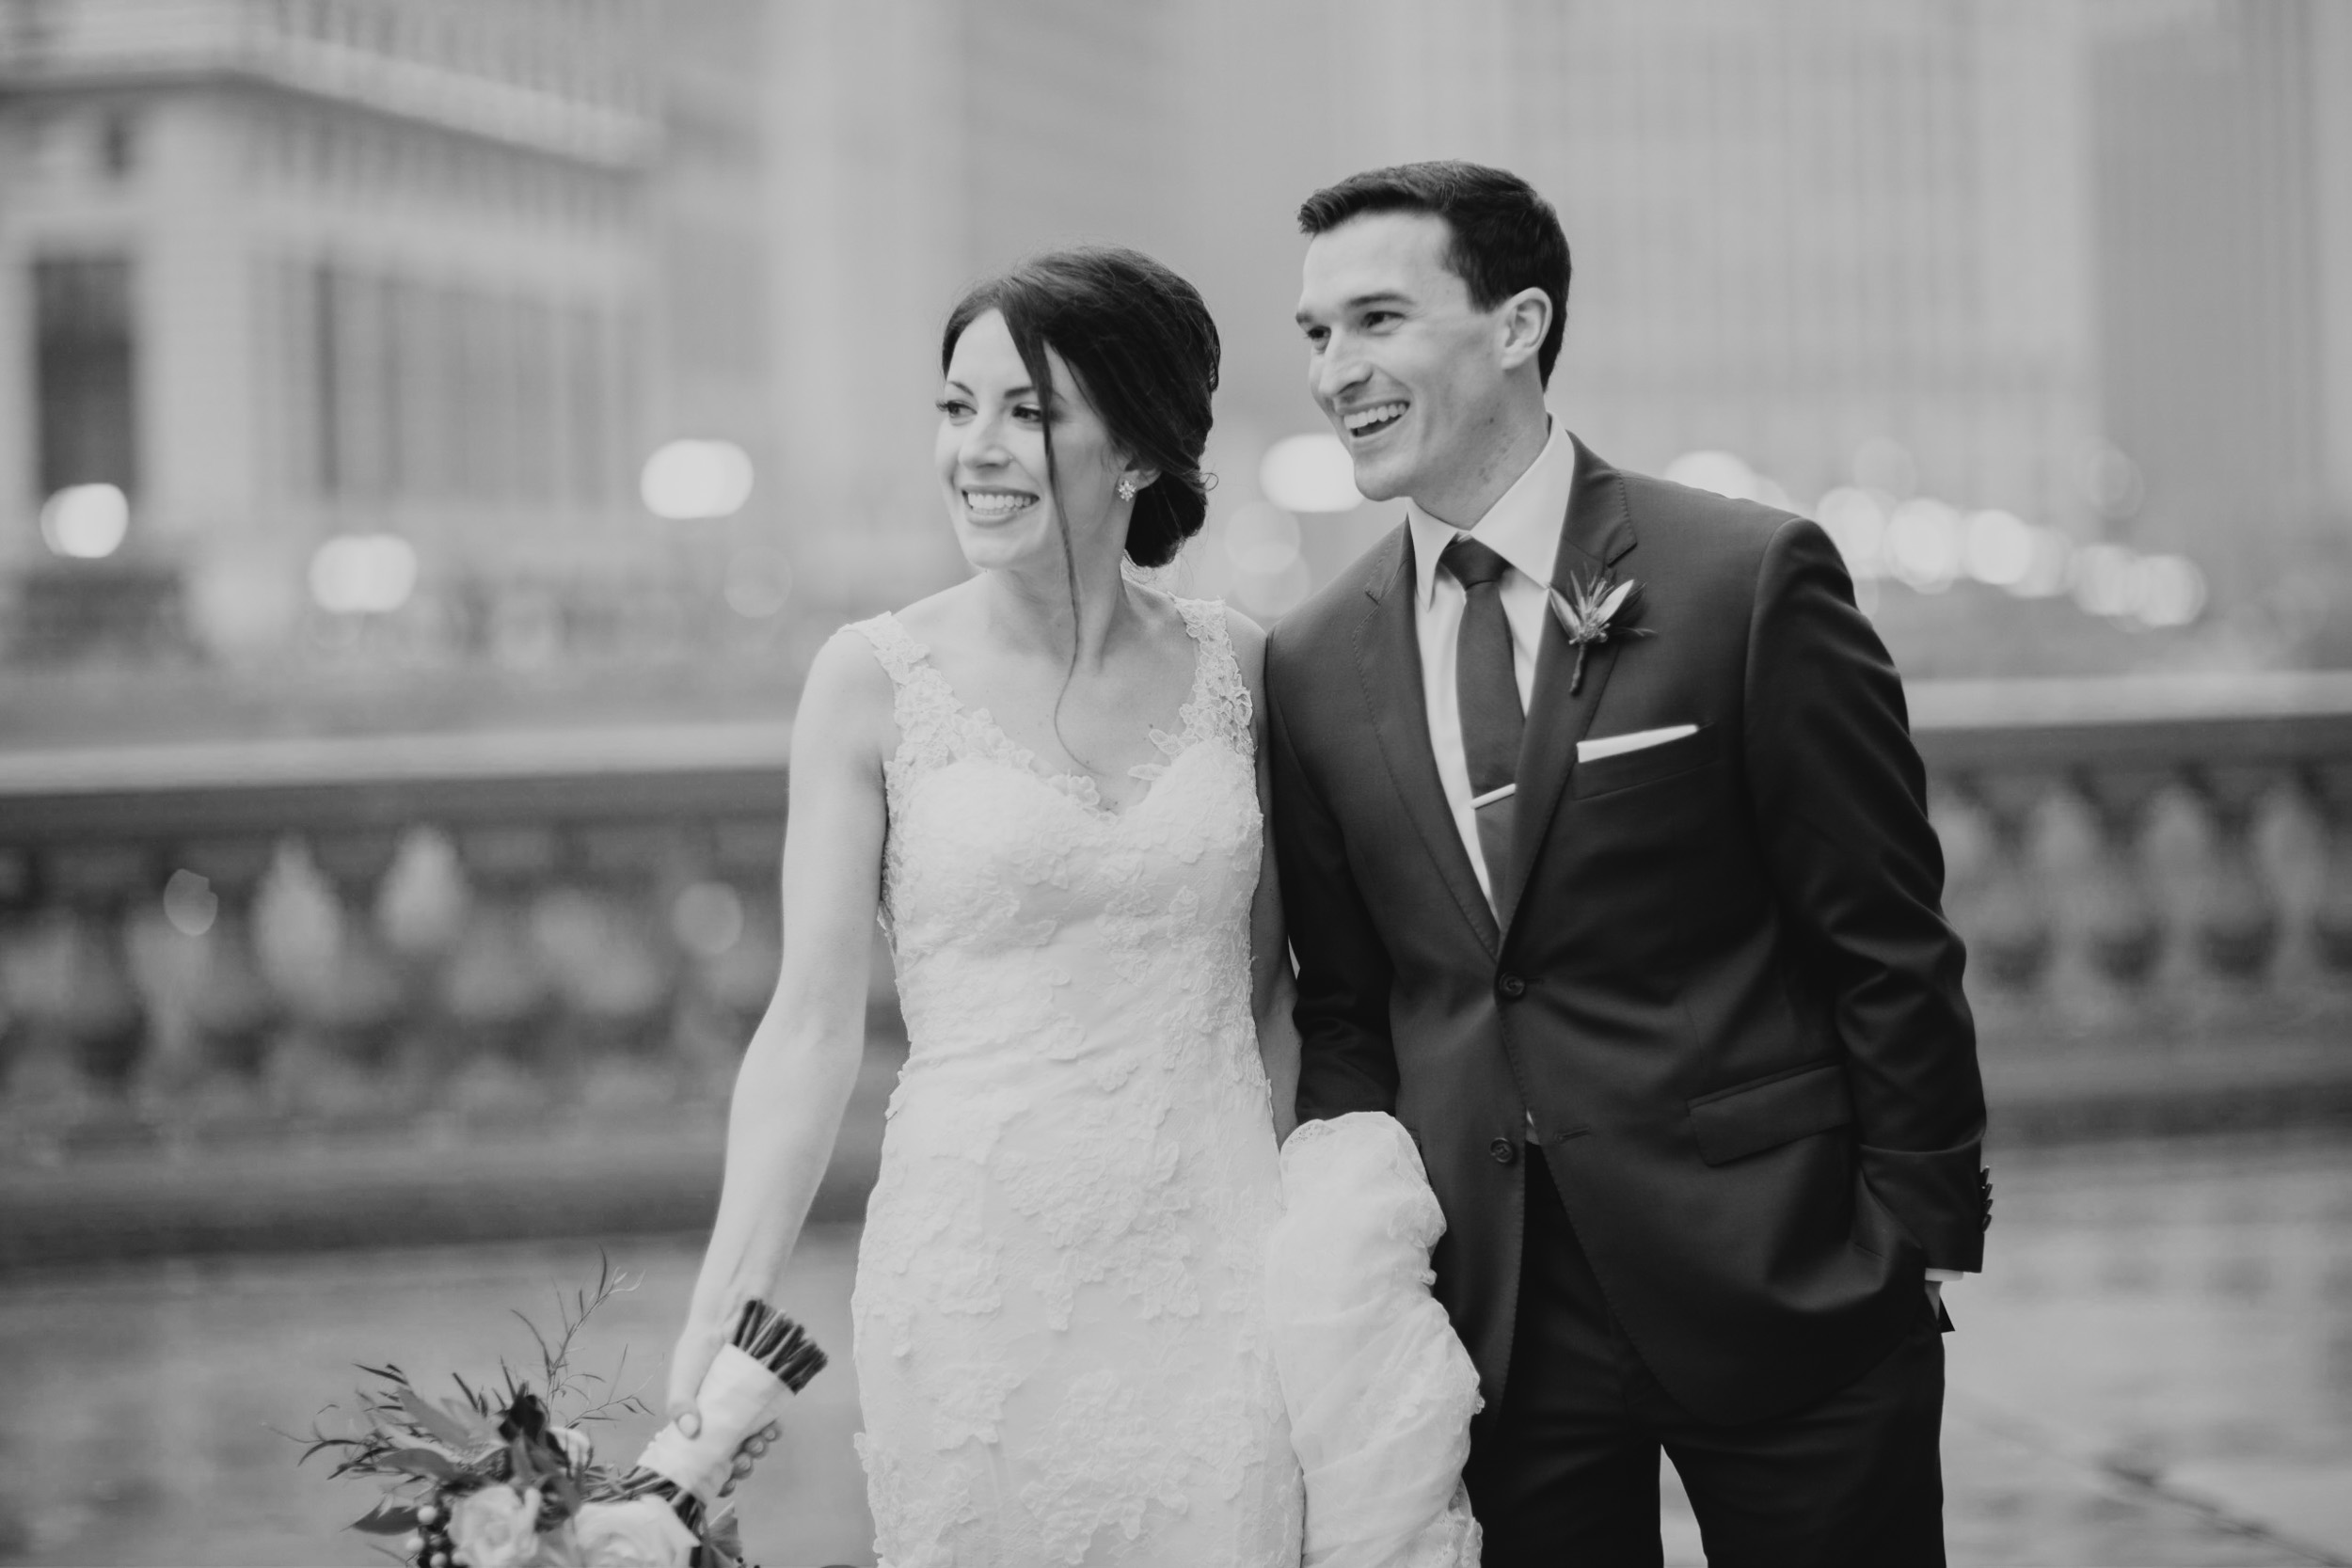 HaroldWashingtonLibraryWedding_Polly C Photography 1704151538.jpg